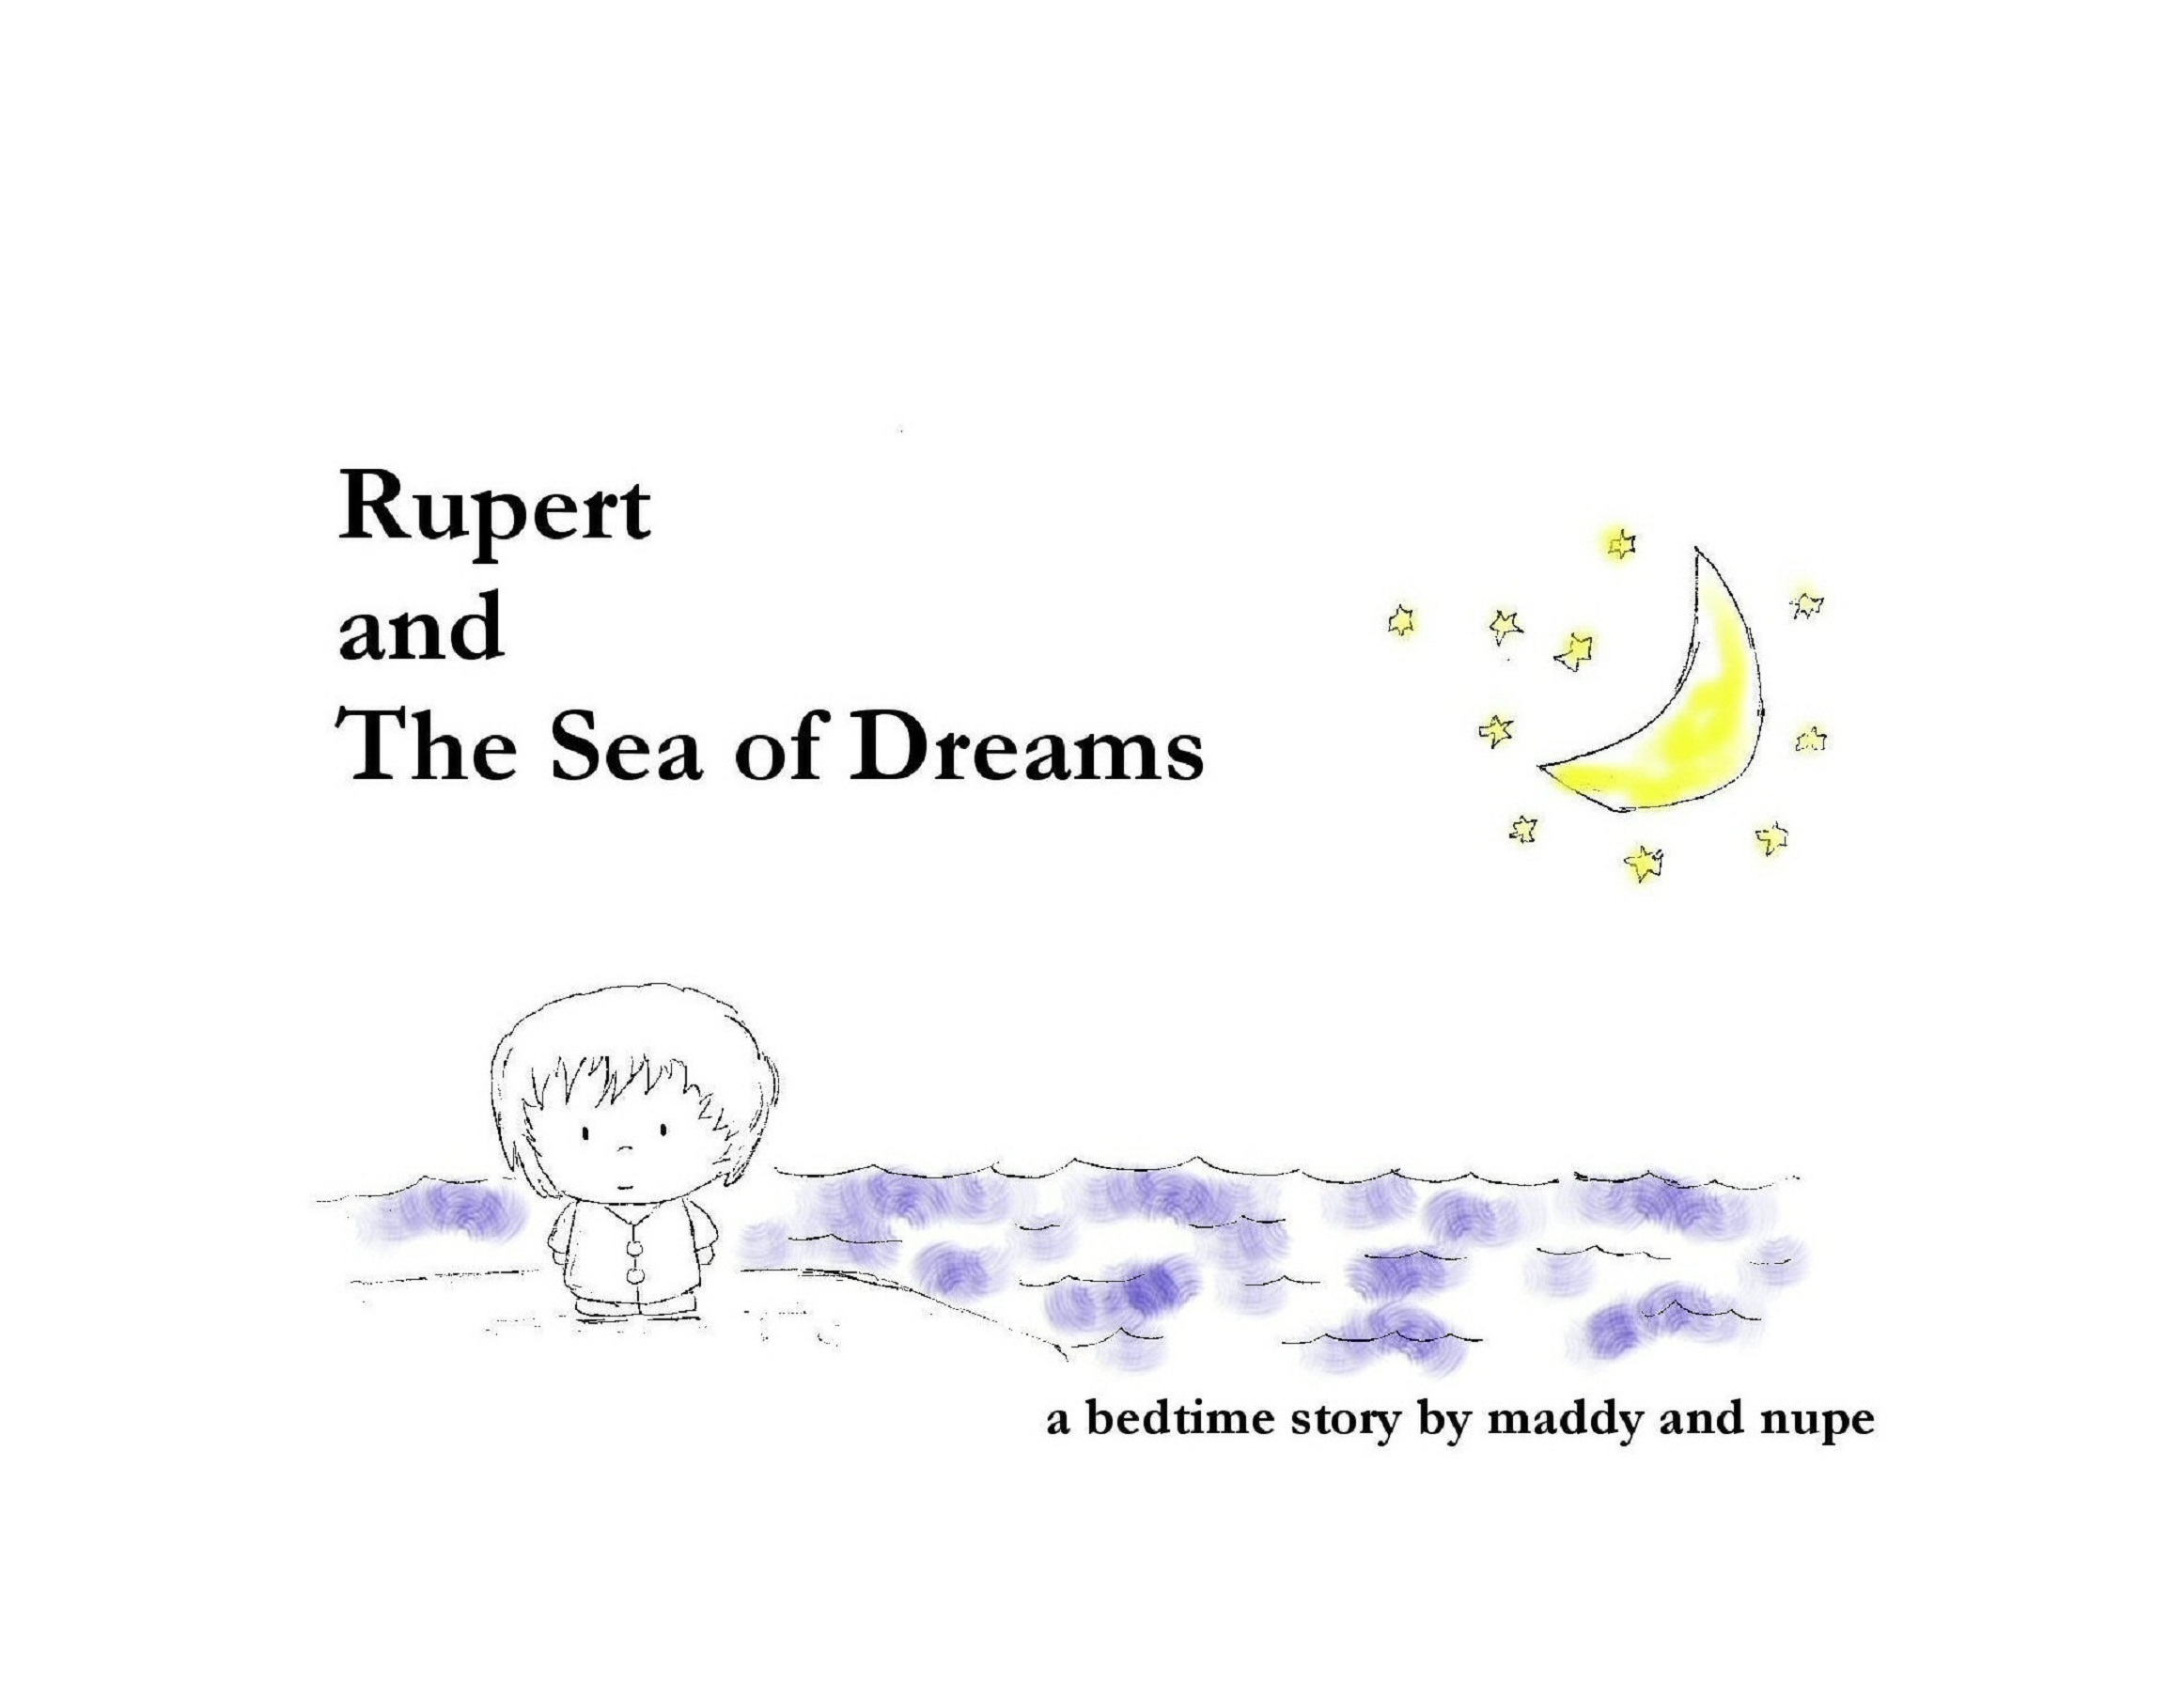 Rupert and the sea of dreams